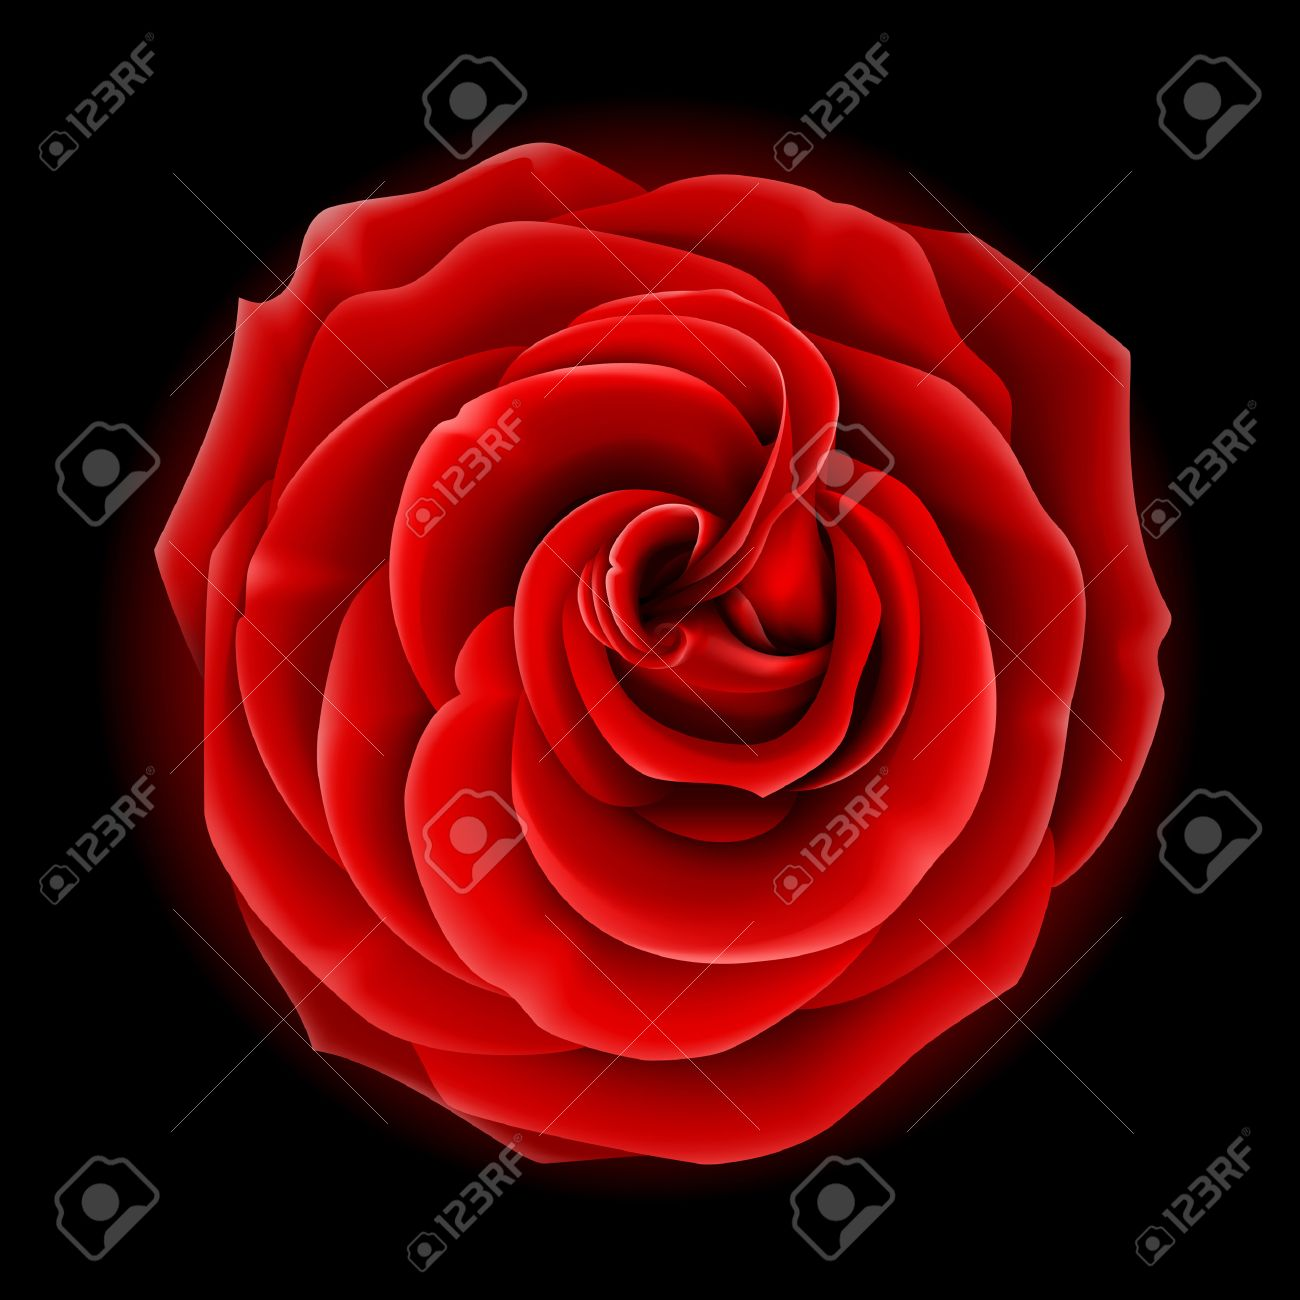 Beautiful vector red rose, symbol of love and passion - 6082469